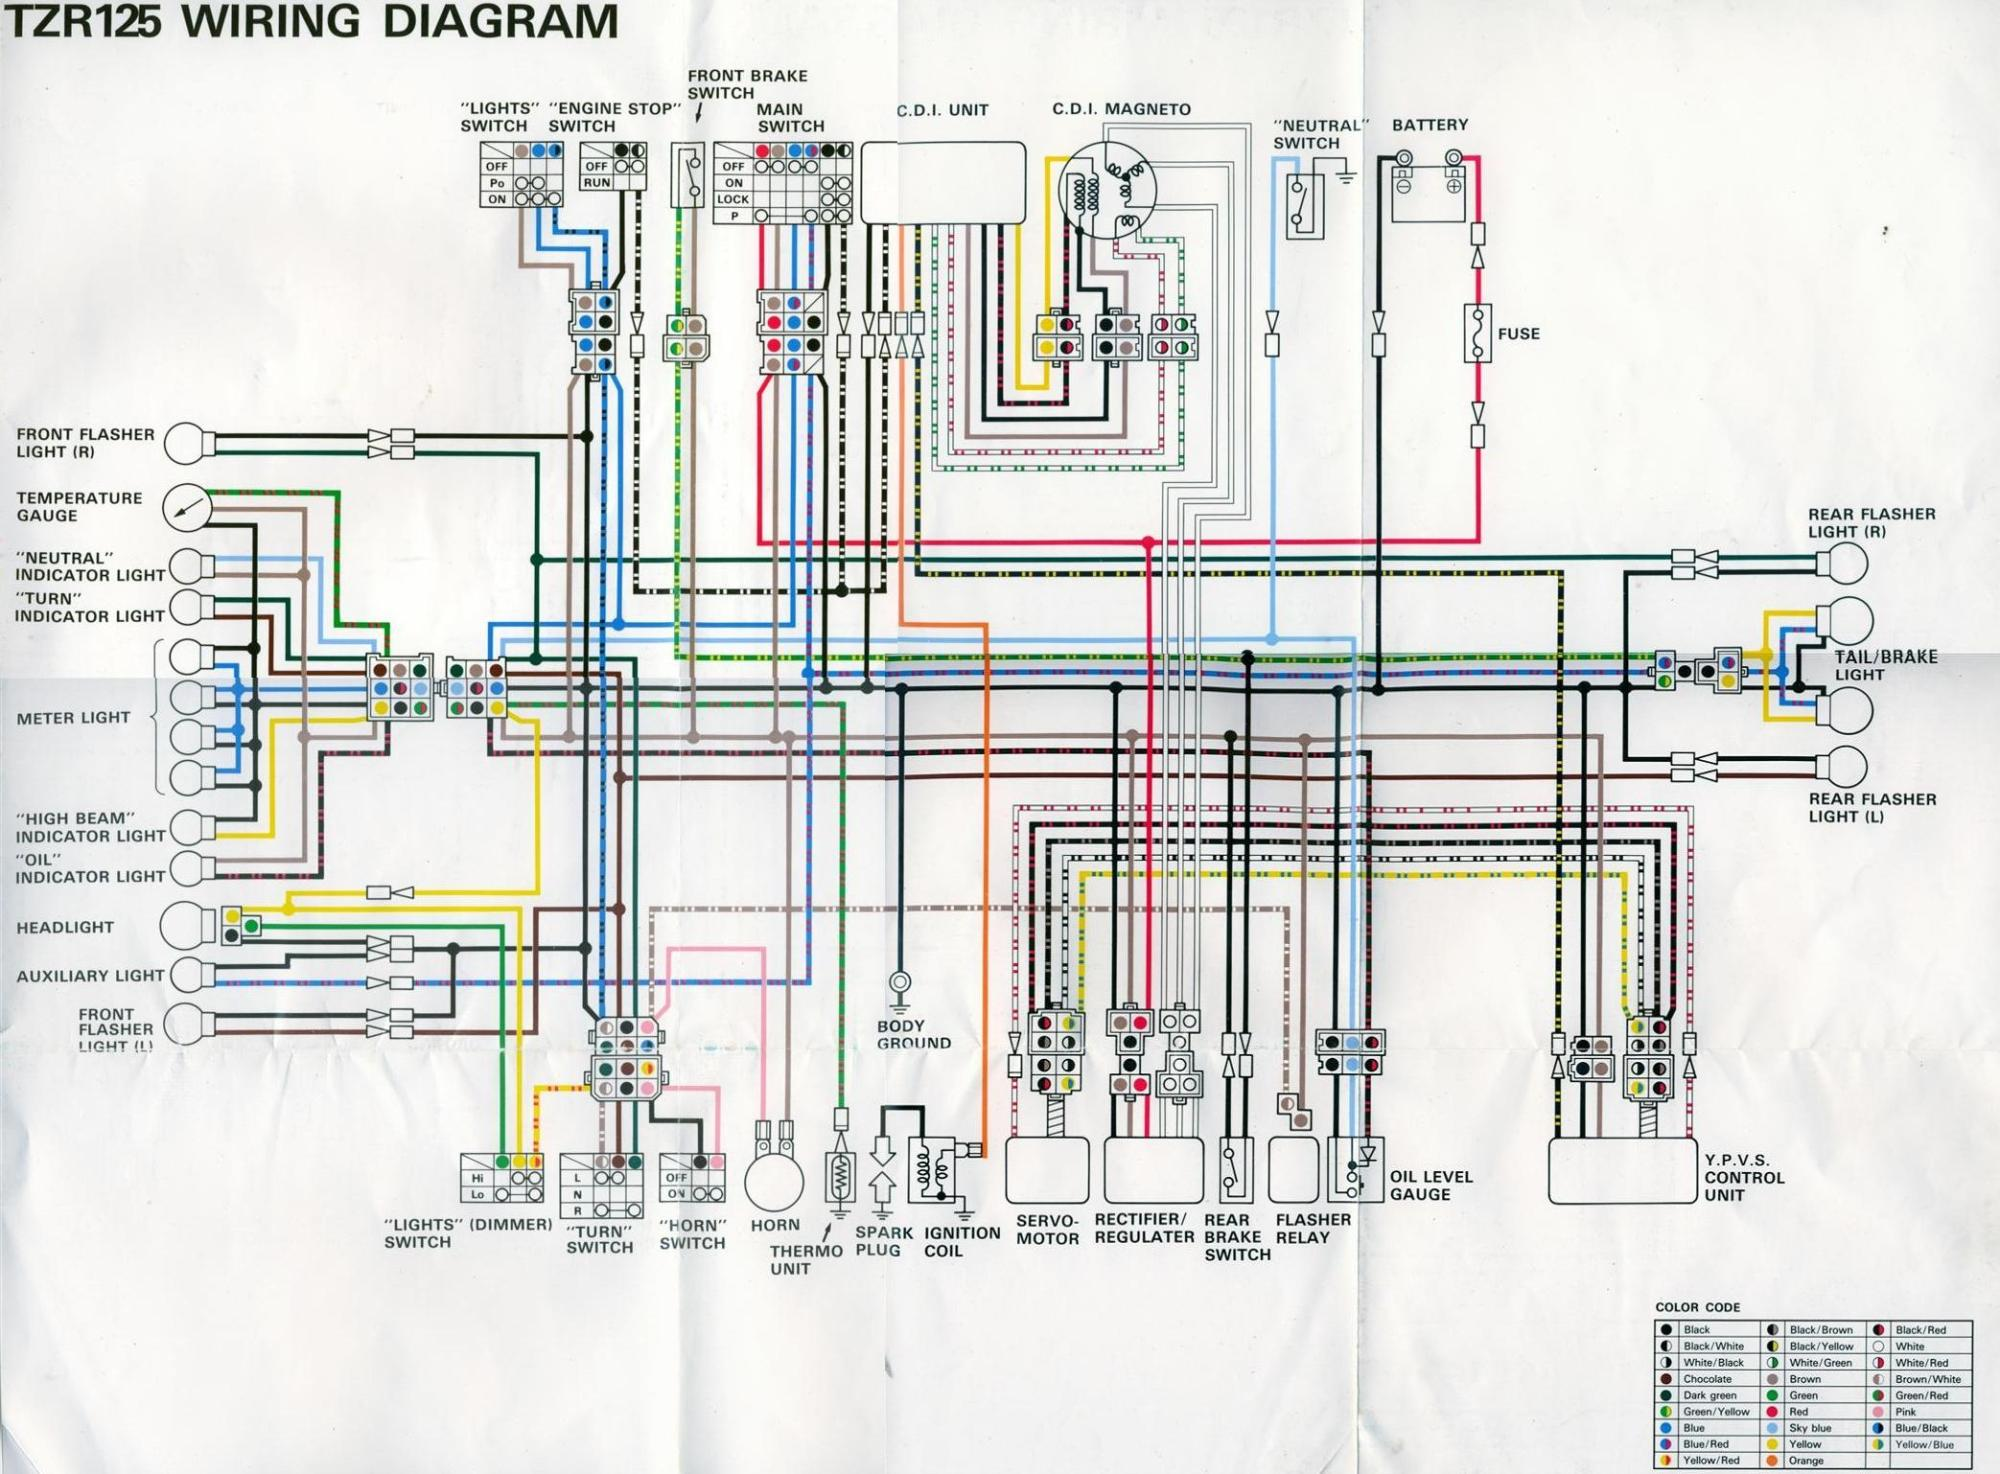 hight resolution of ttr 125 wiring diagram wiring diagram repair guidesttr 125 wiring diagram